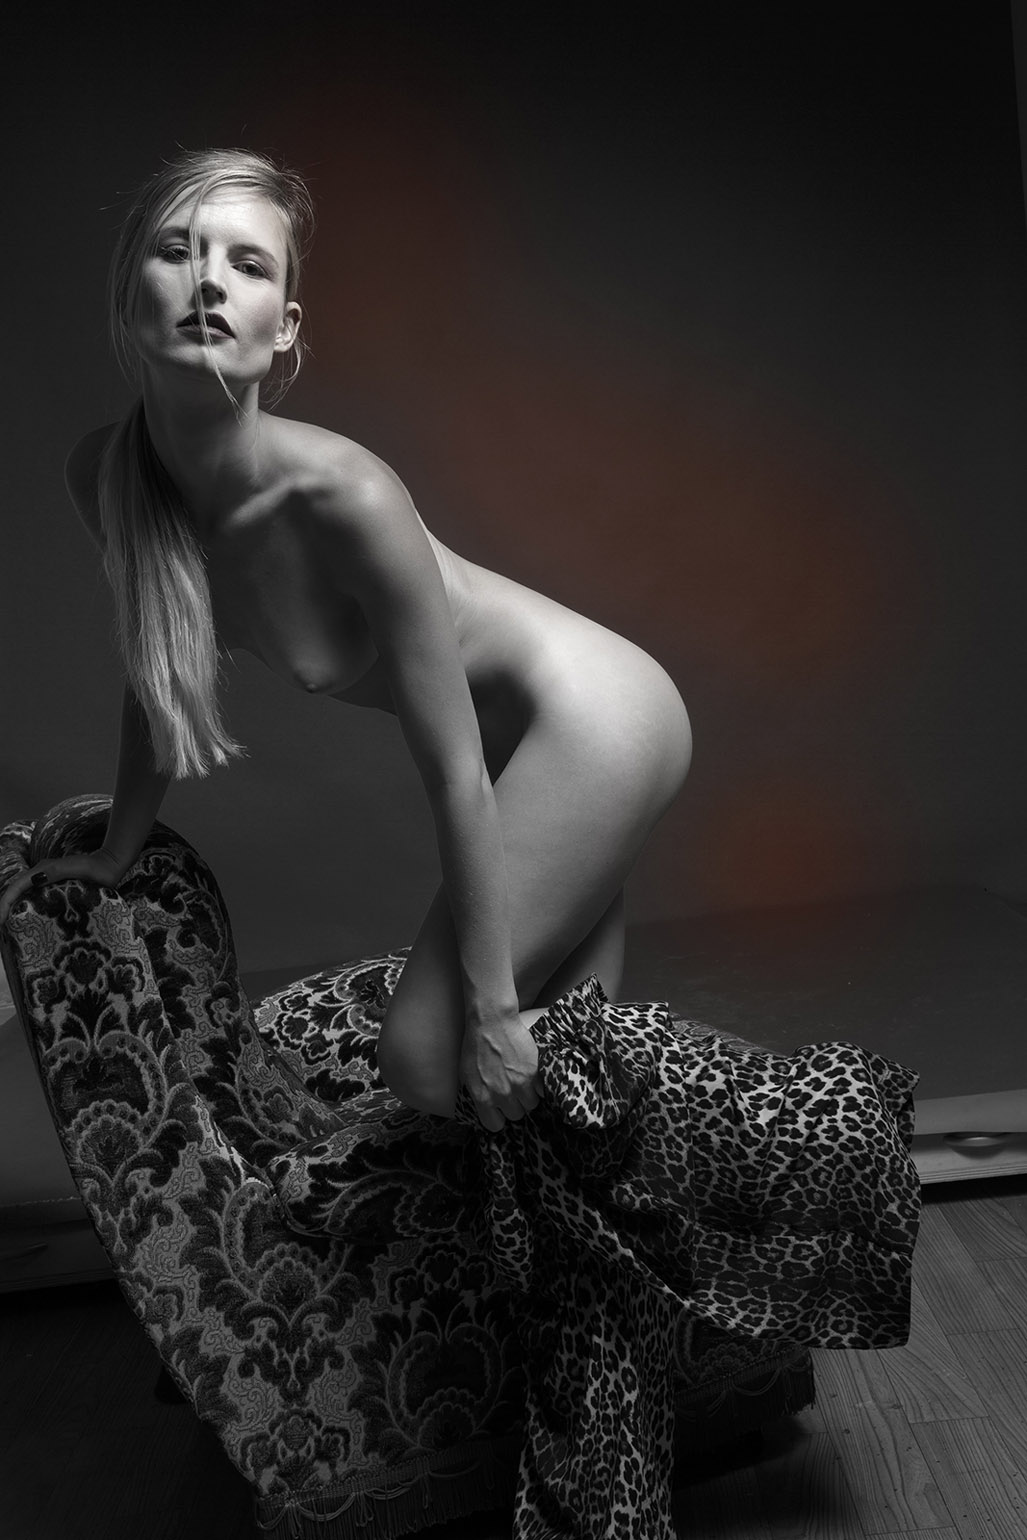 Cynthia Cremer nude by Paolo Prisco